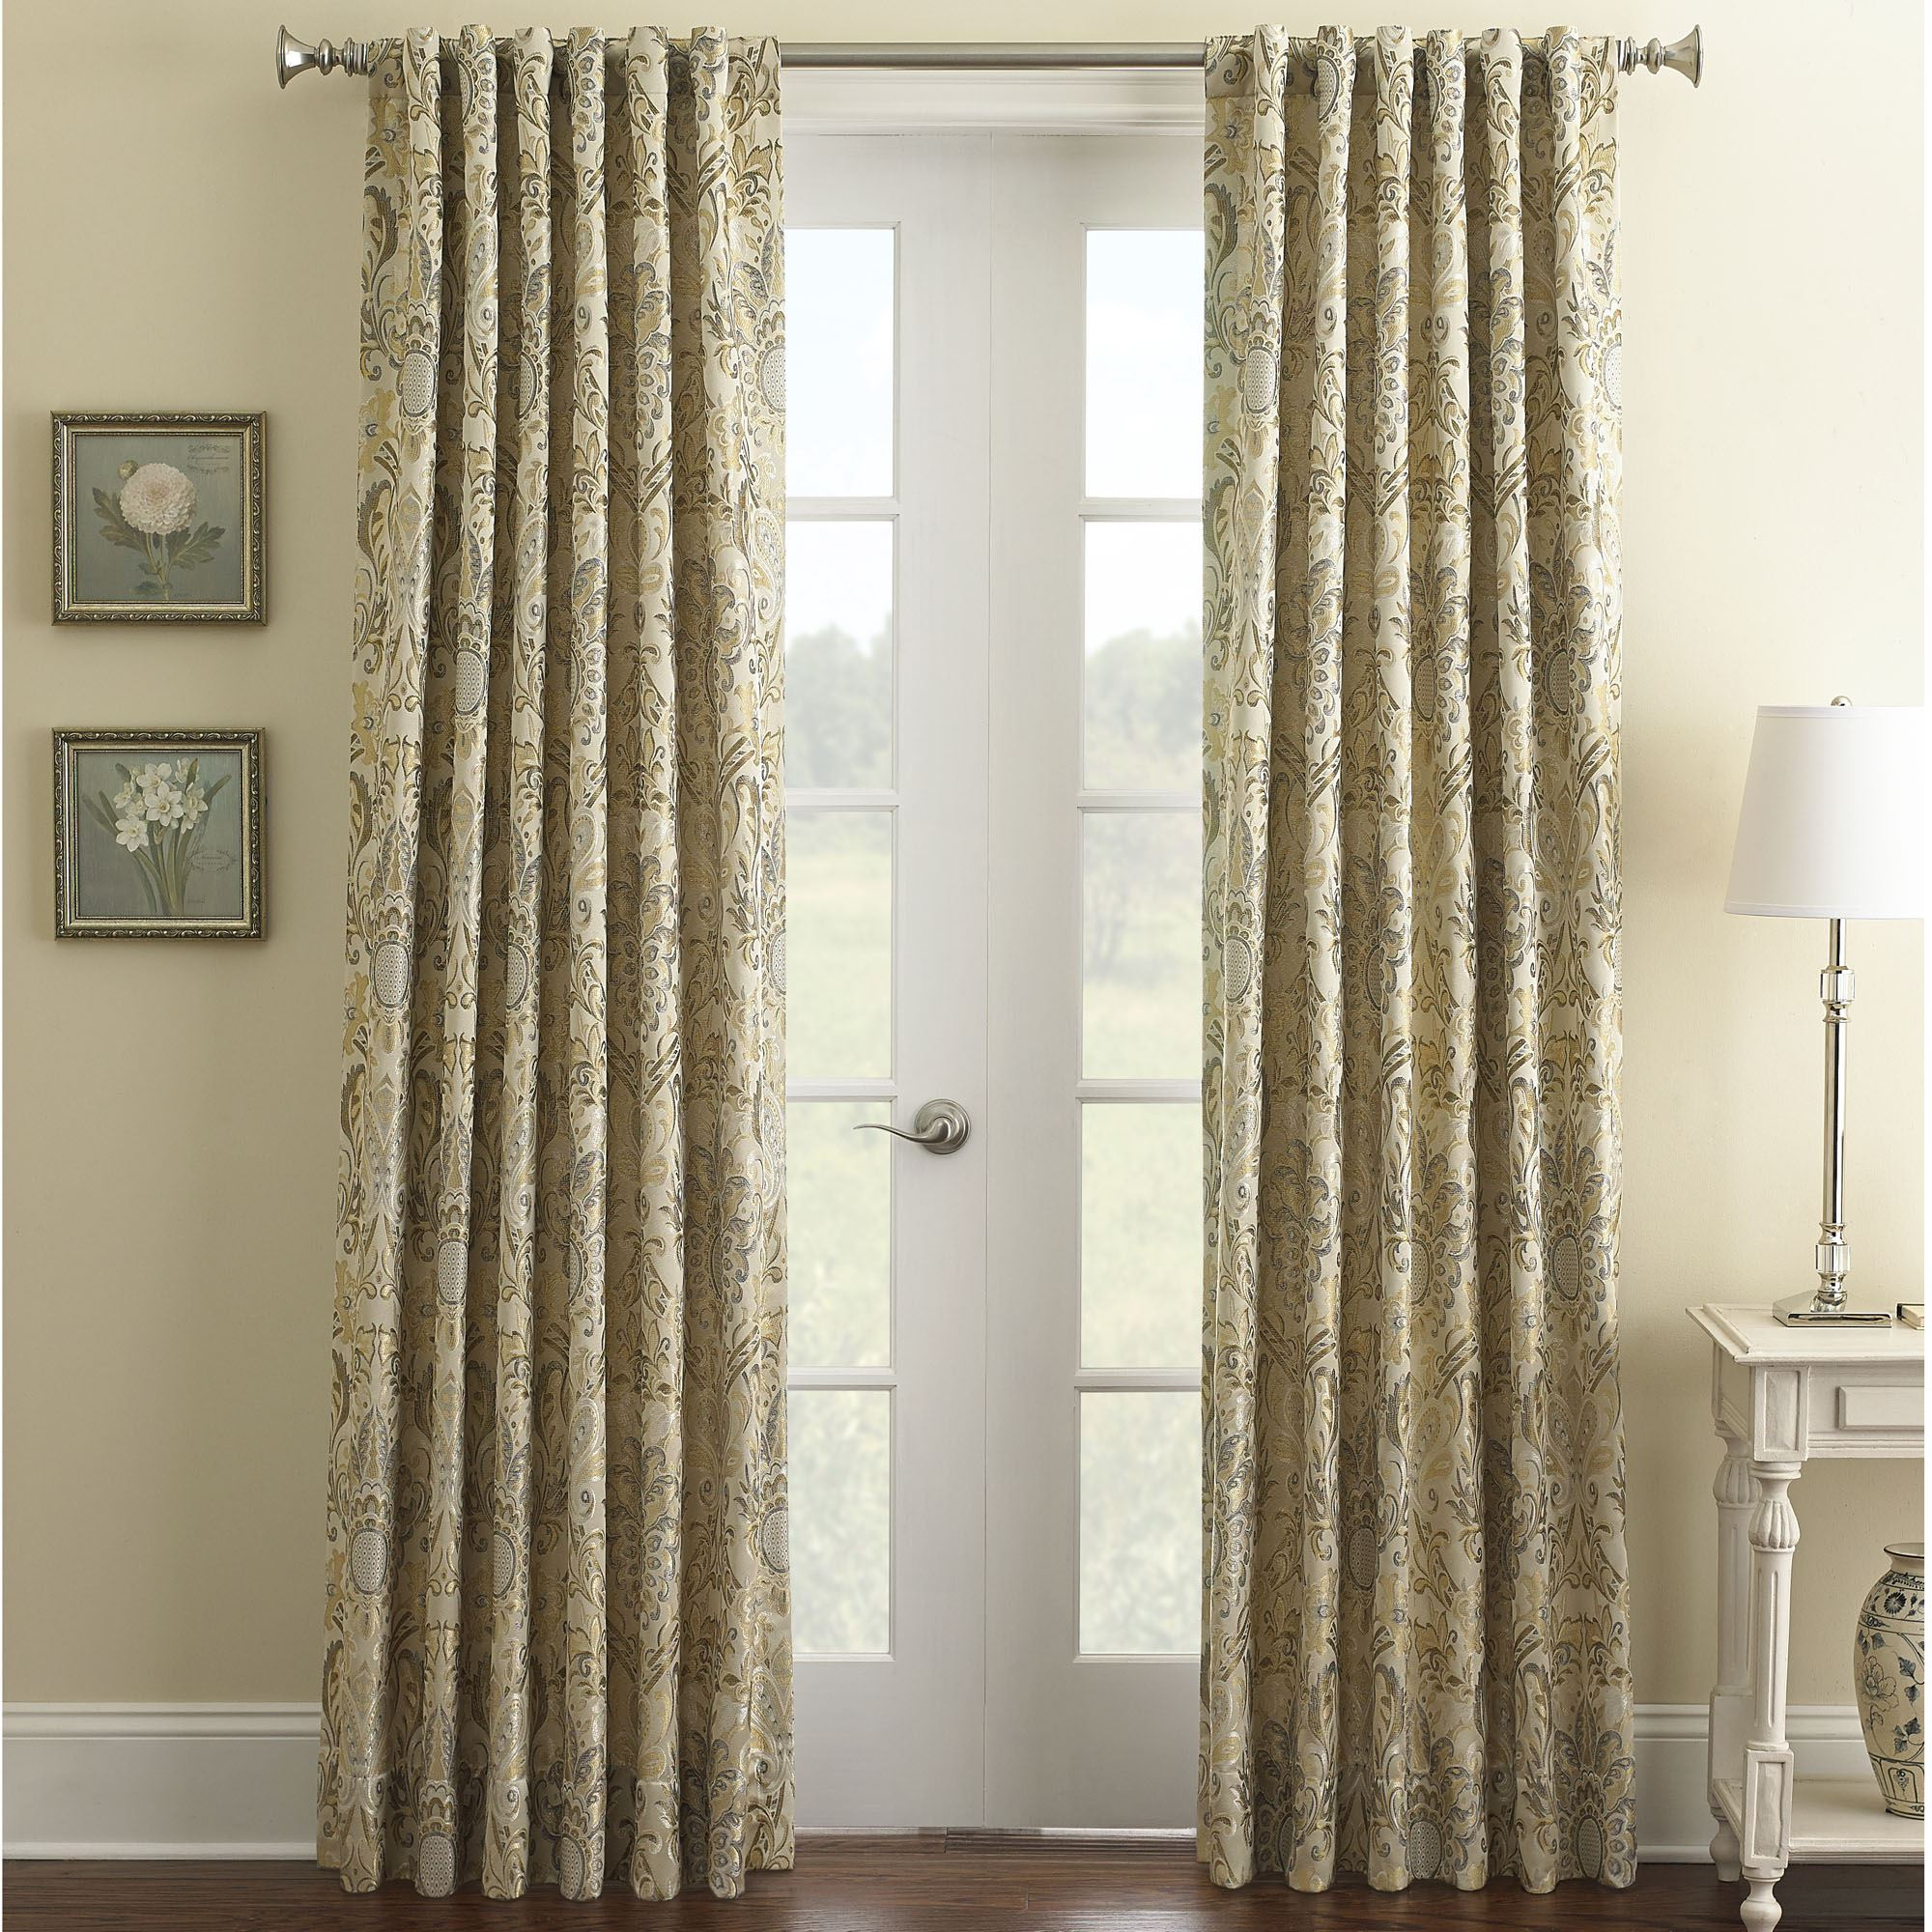 decor your blackout vinyl design barn drapes interior roman curtain ike rug for shades comfortable treatments blinds curtains barns ideas mini pottery home bedroom rods target window drapery dark ikea cheap with